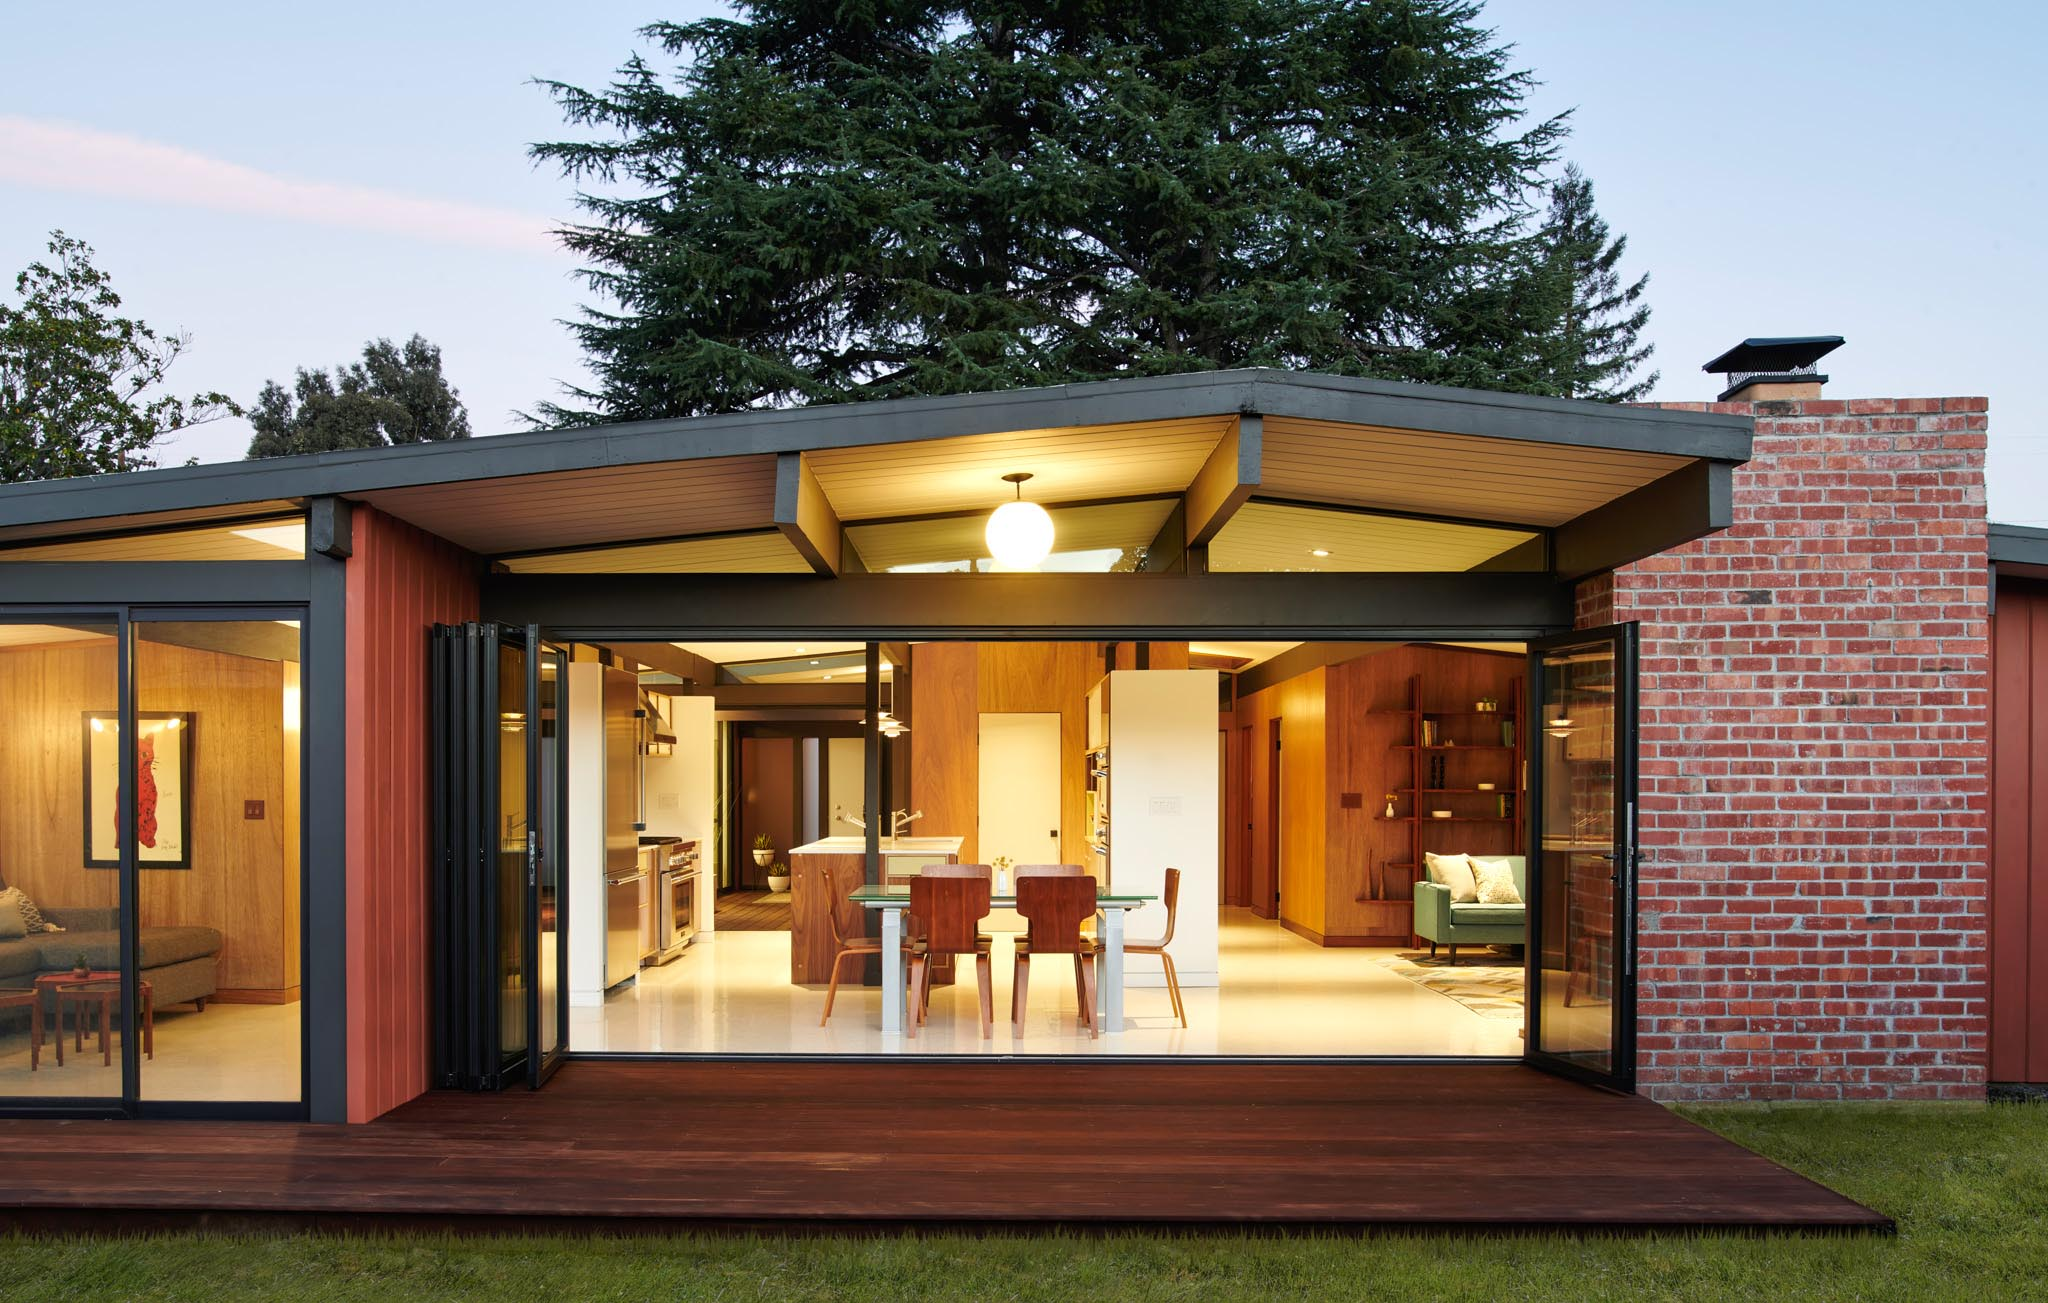 Eichler homes remodel with folding glass wall to let the outdoors in